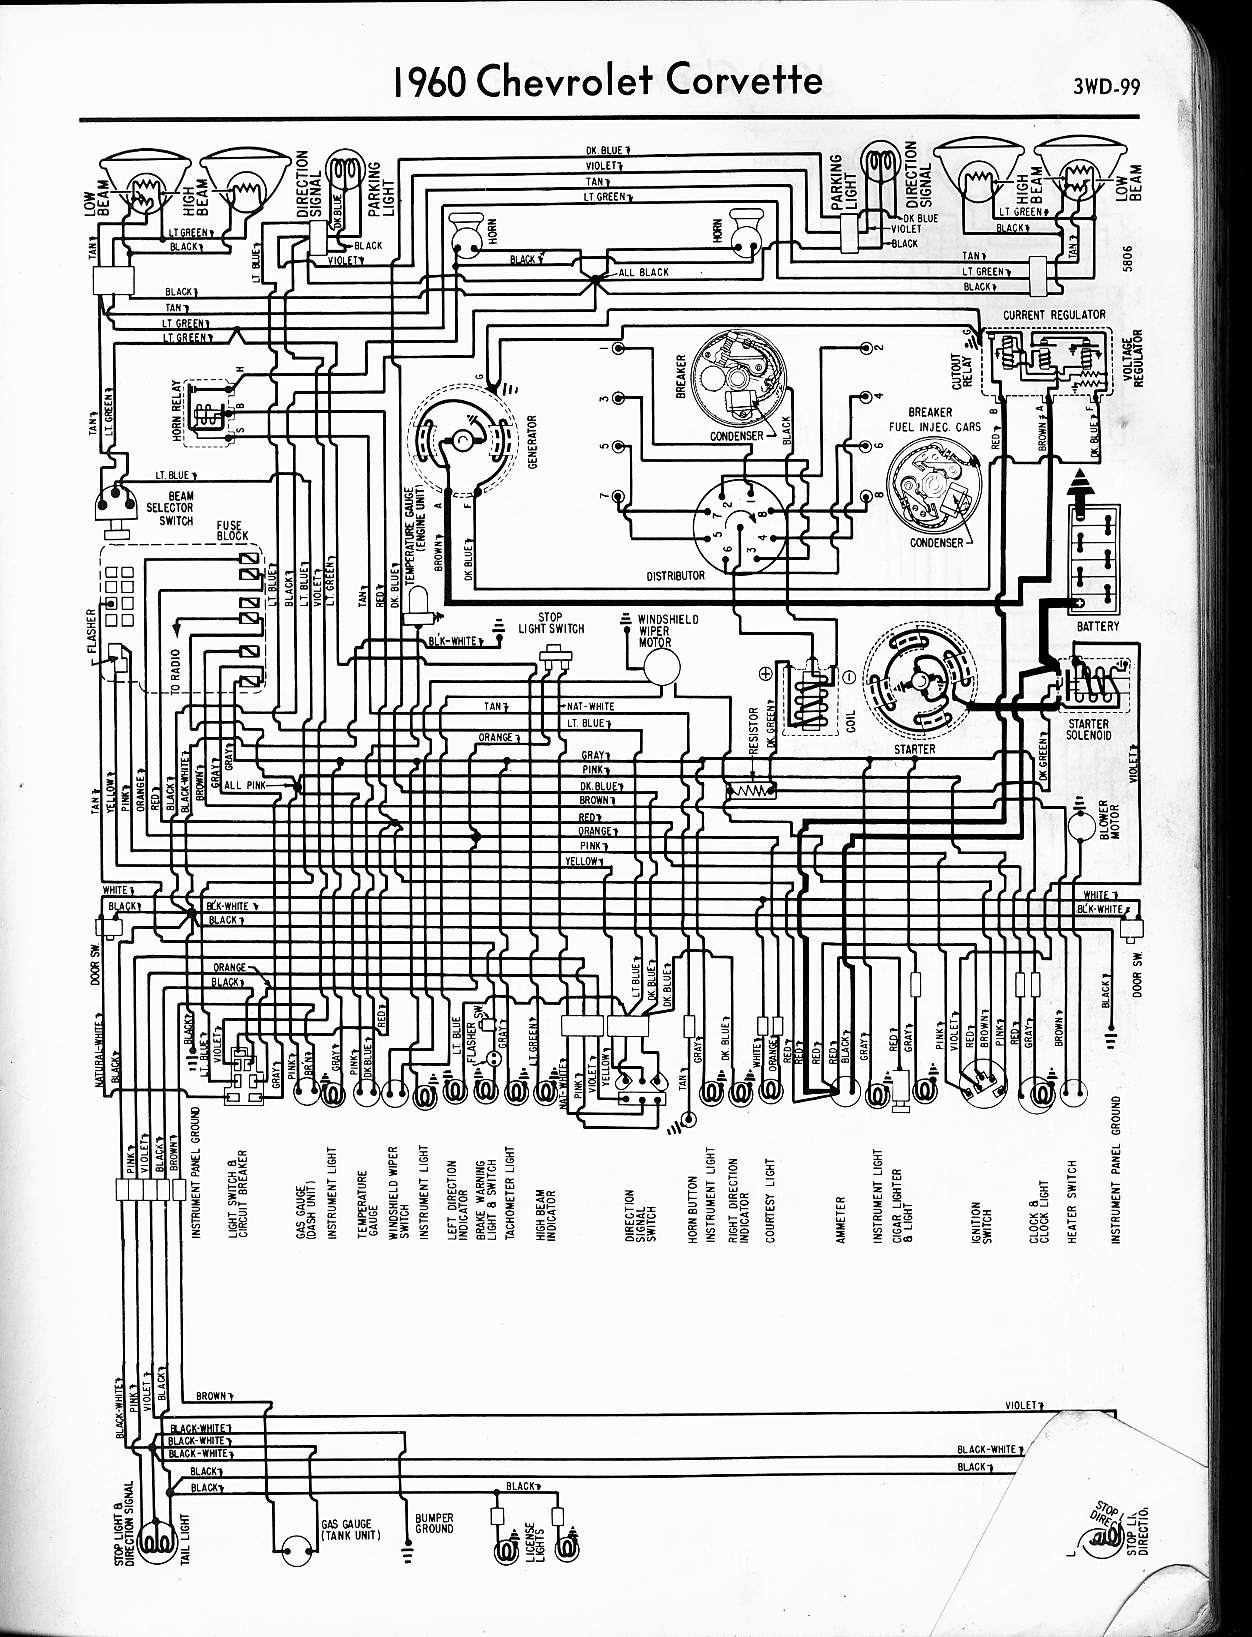 Wiring Diagram 1959 Chrysler Windsor Worksheet And 1960 Corvette Detailed Schematics Rh Jppastryarts Com 1958 Saratoga New Yorker